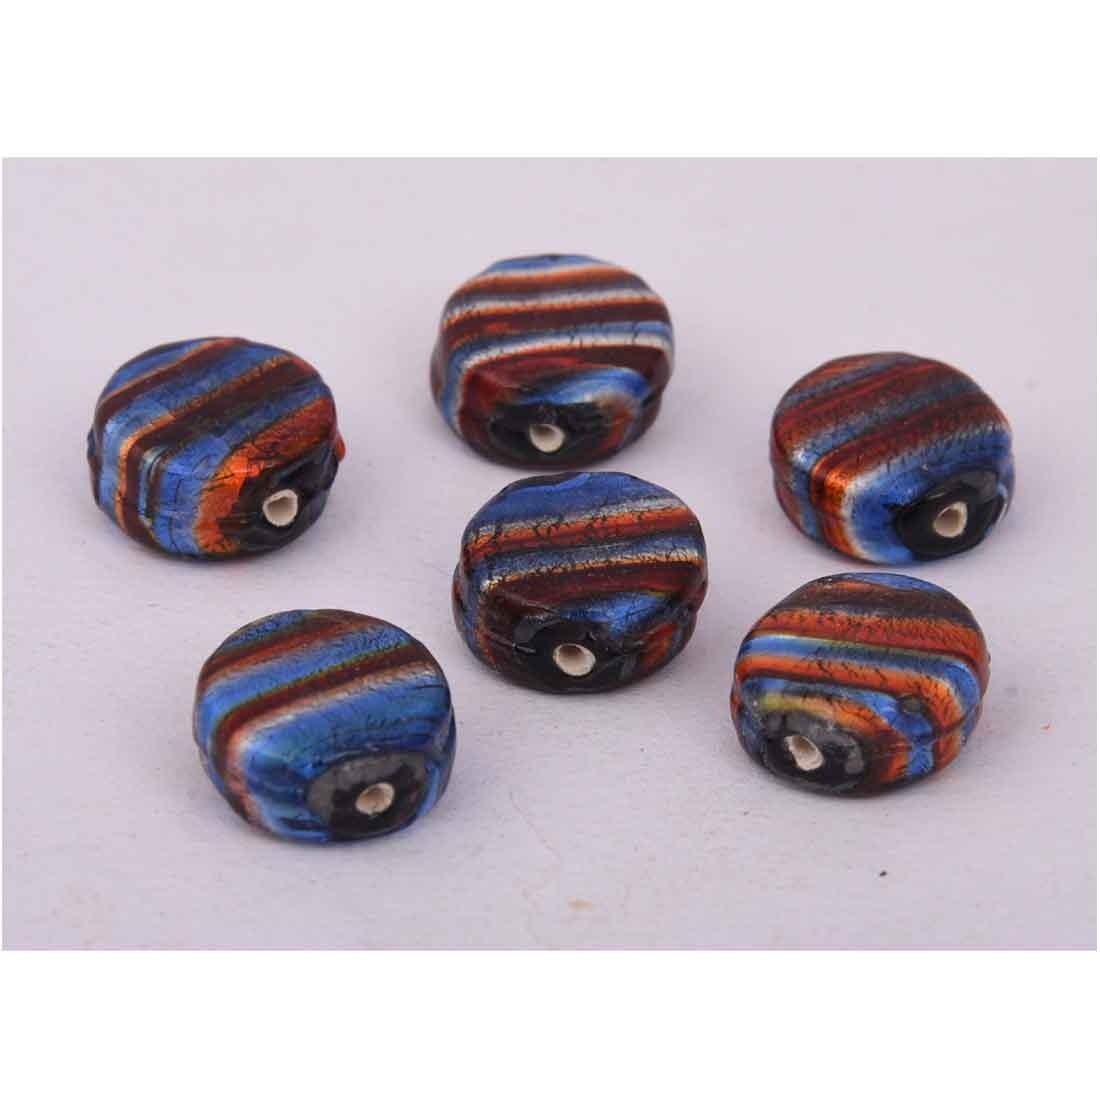 Beads India 1700071 Lampwork Handcrafted Glass Beads/Discounts Above 500 pcs